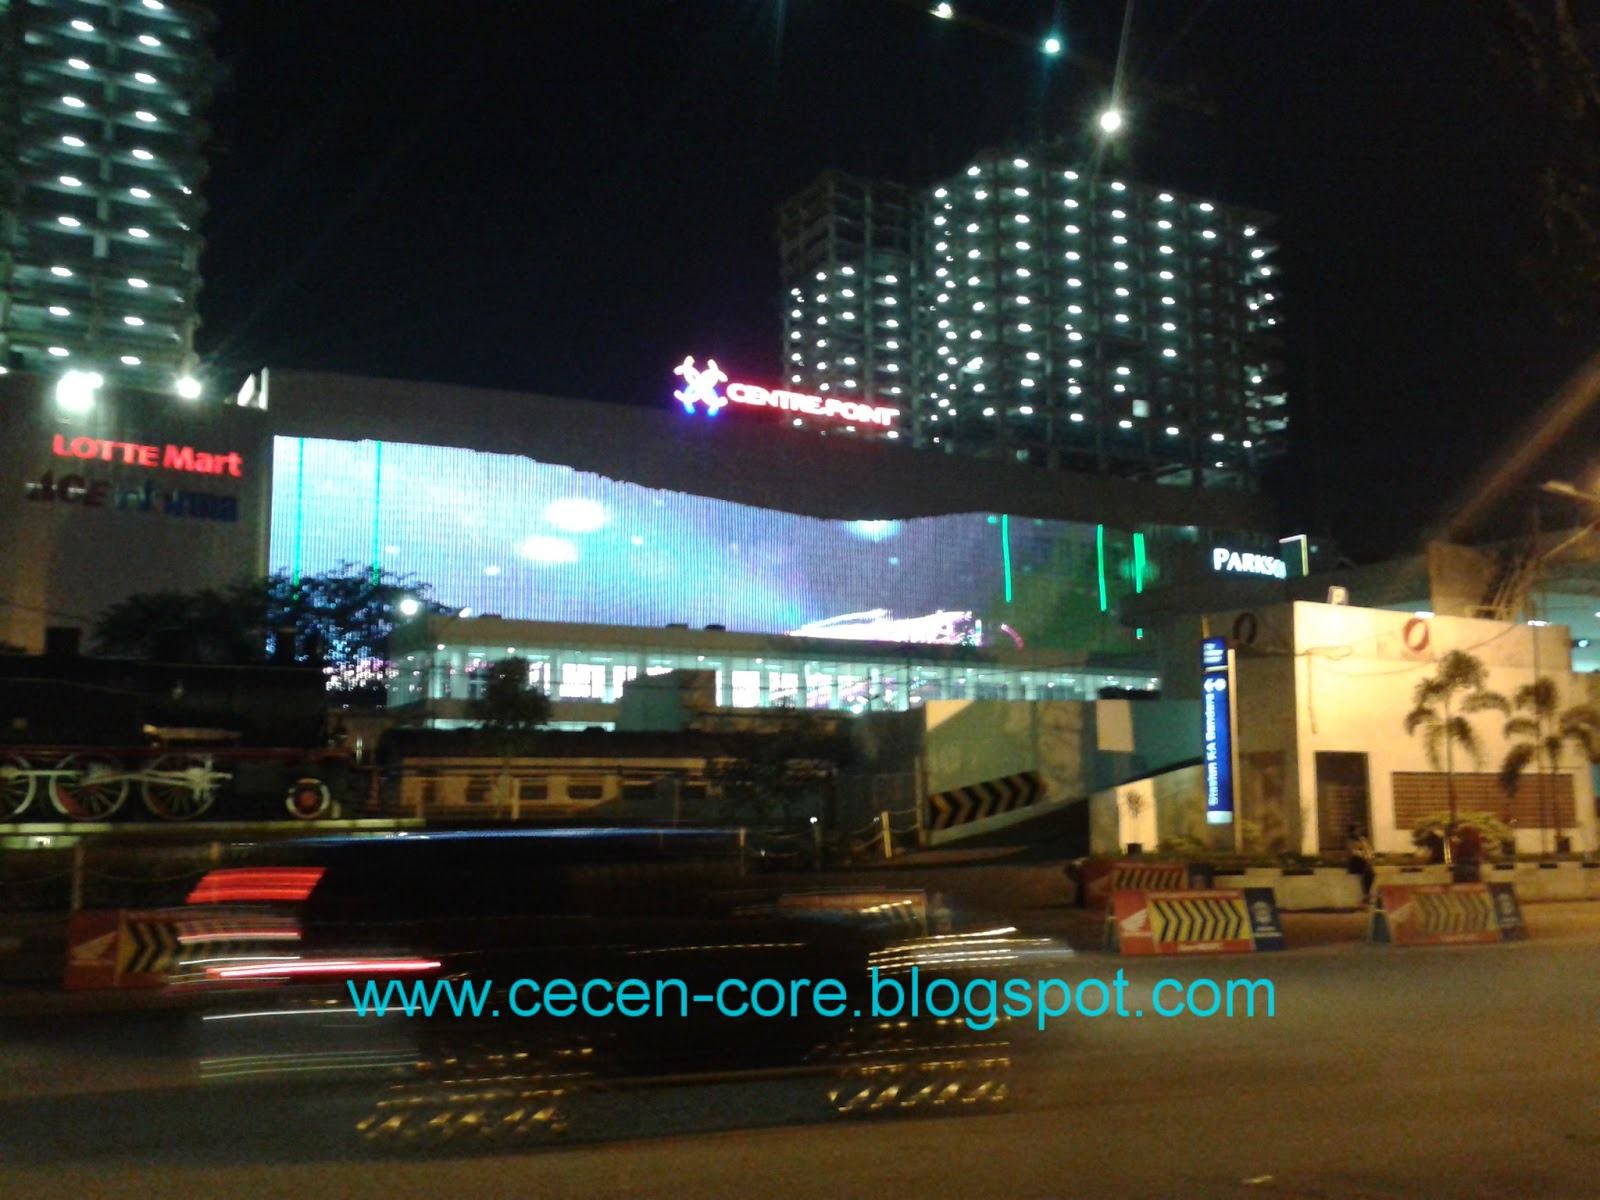 Layar LED raksasa di Medan Centre Point (MCP)